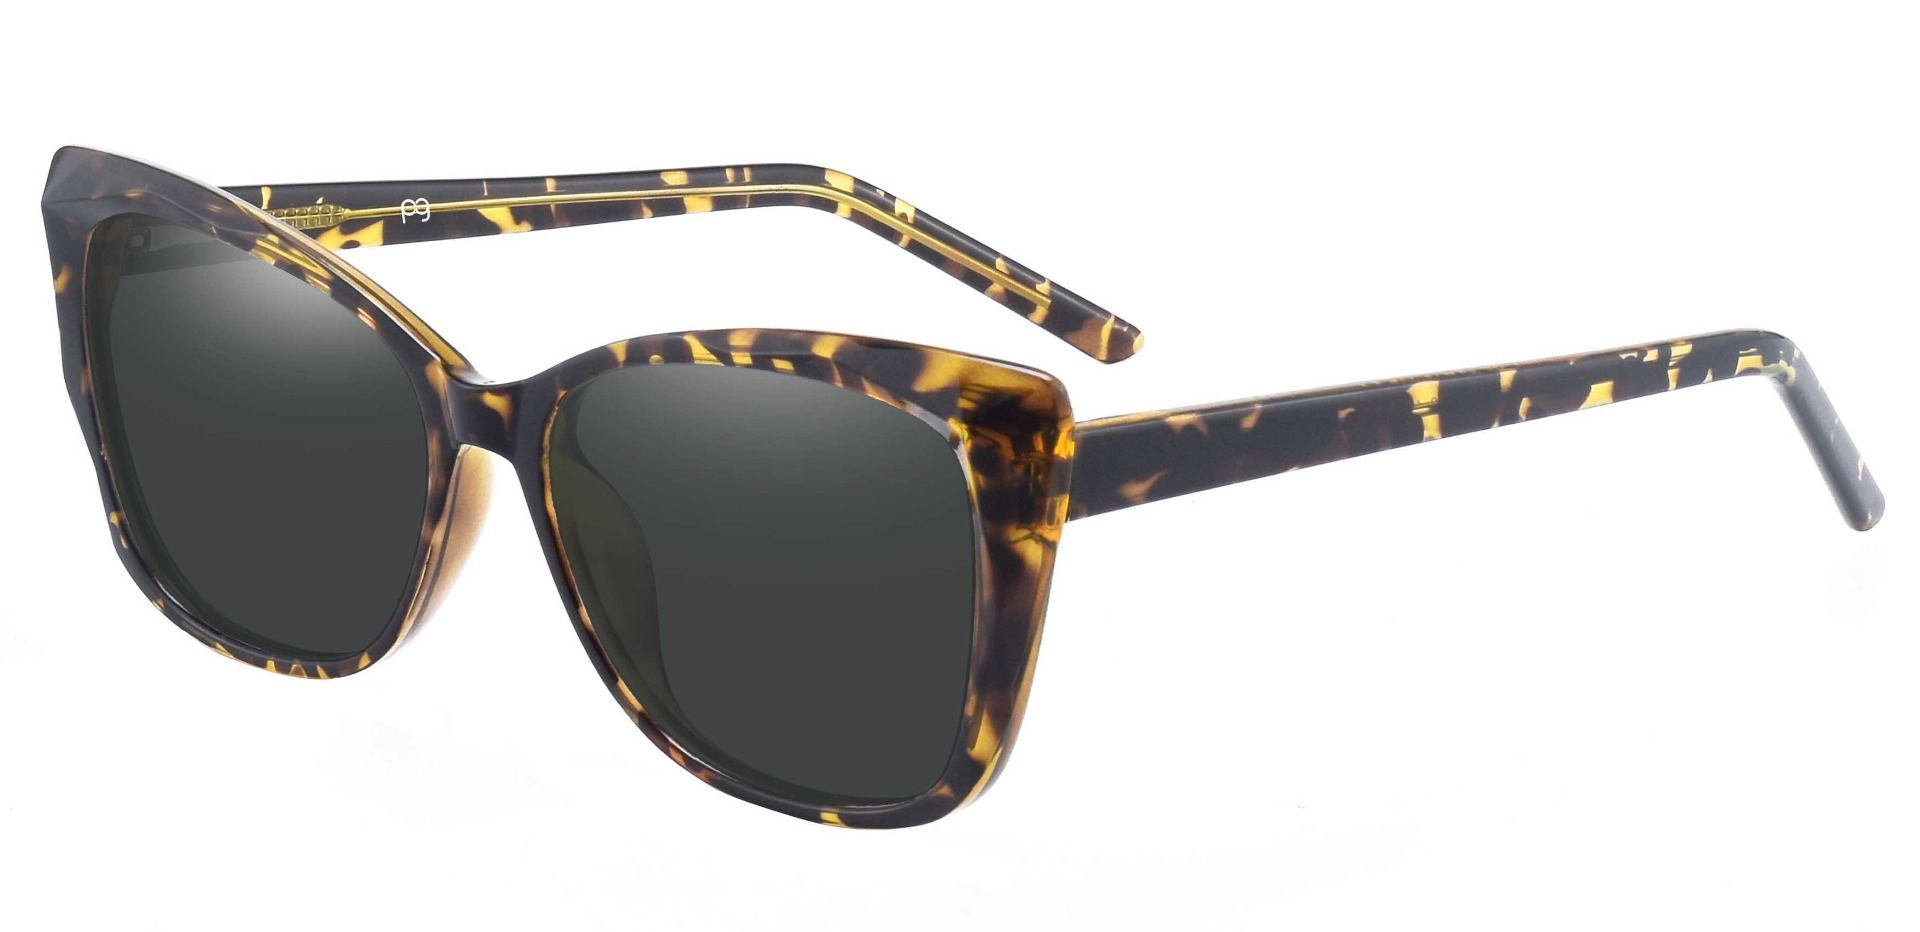 Mabel Square Lined Bifocal Sunglasses - Tortoise Frame With Gray Lenses